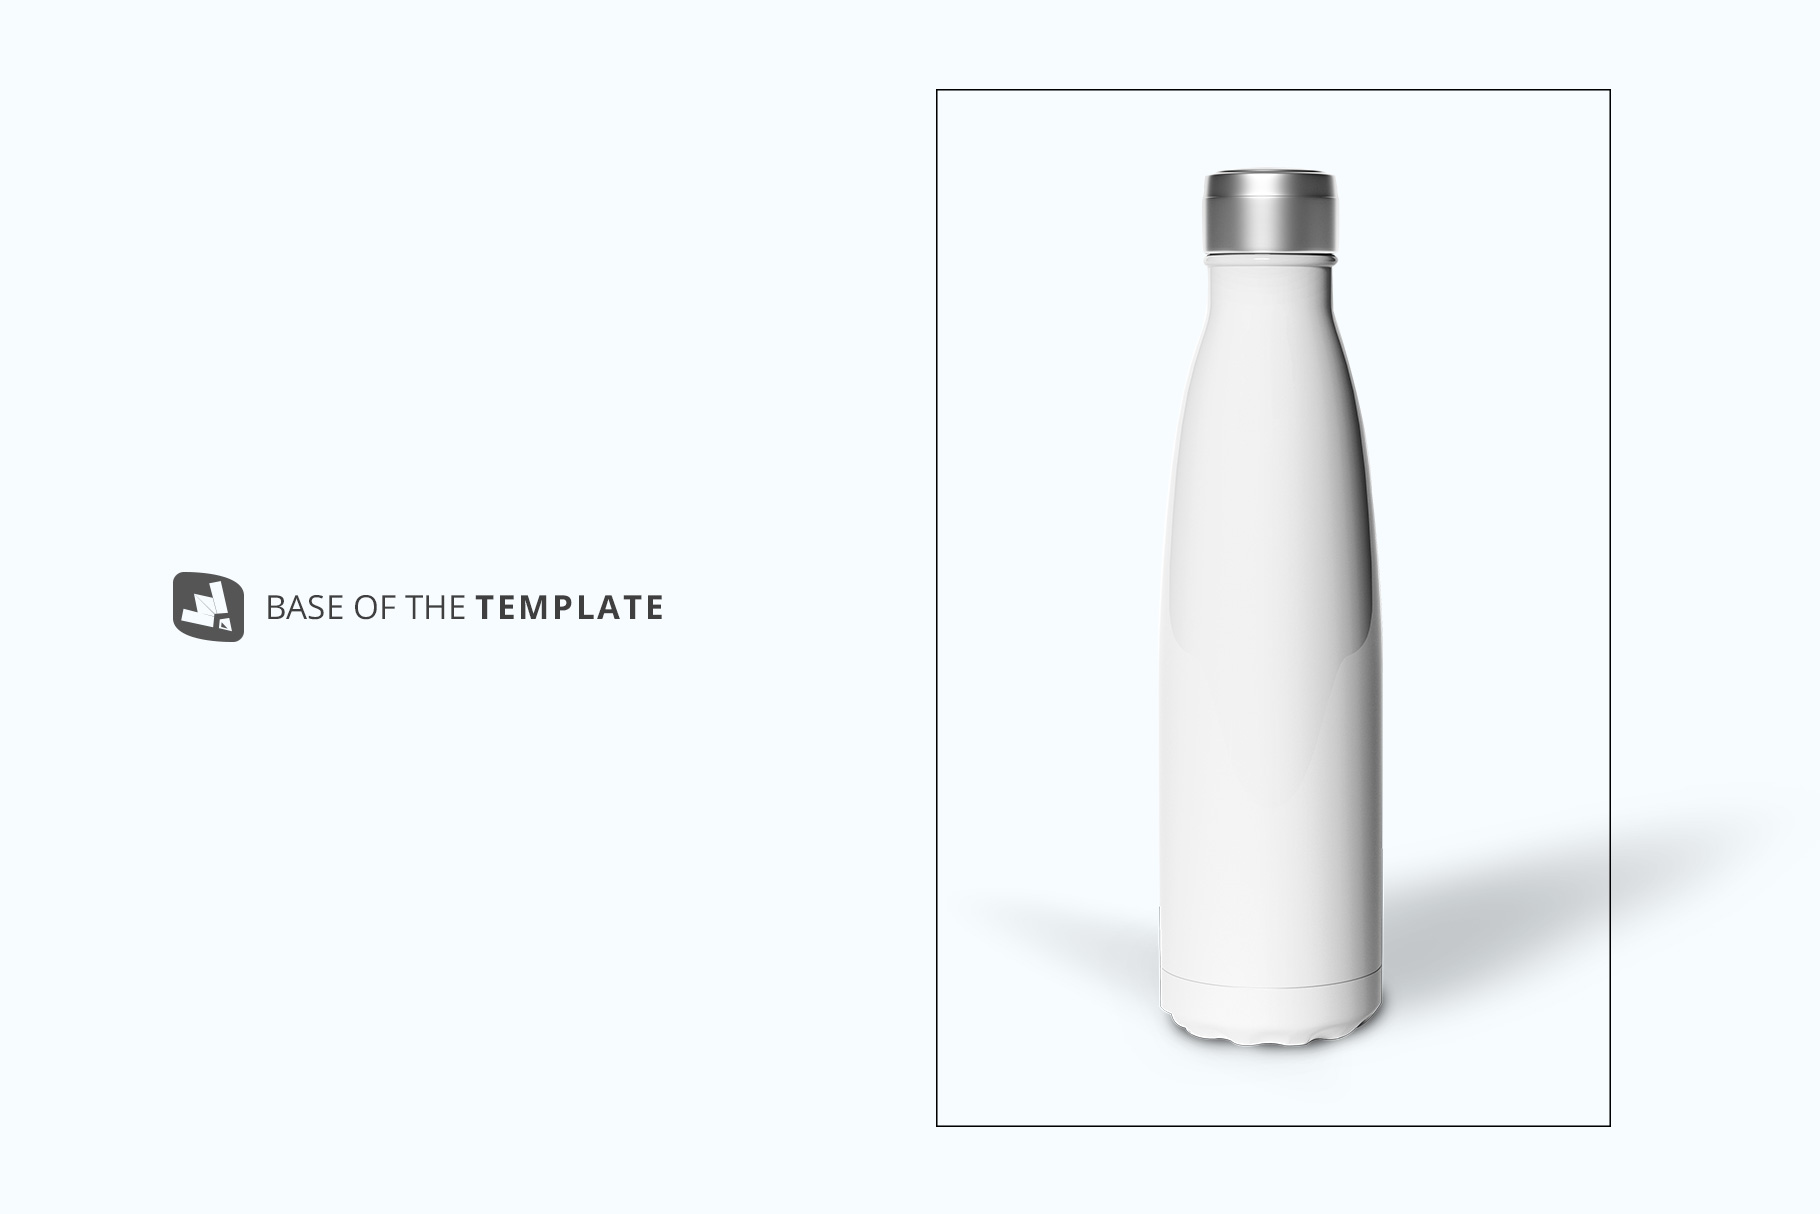 base image of the steel thermos bottle mockup